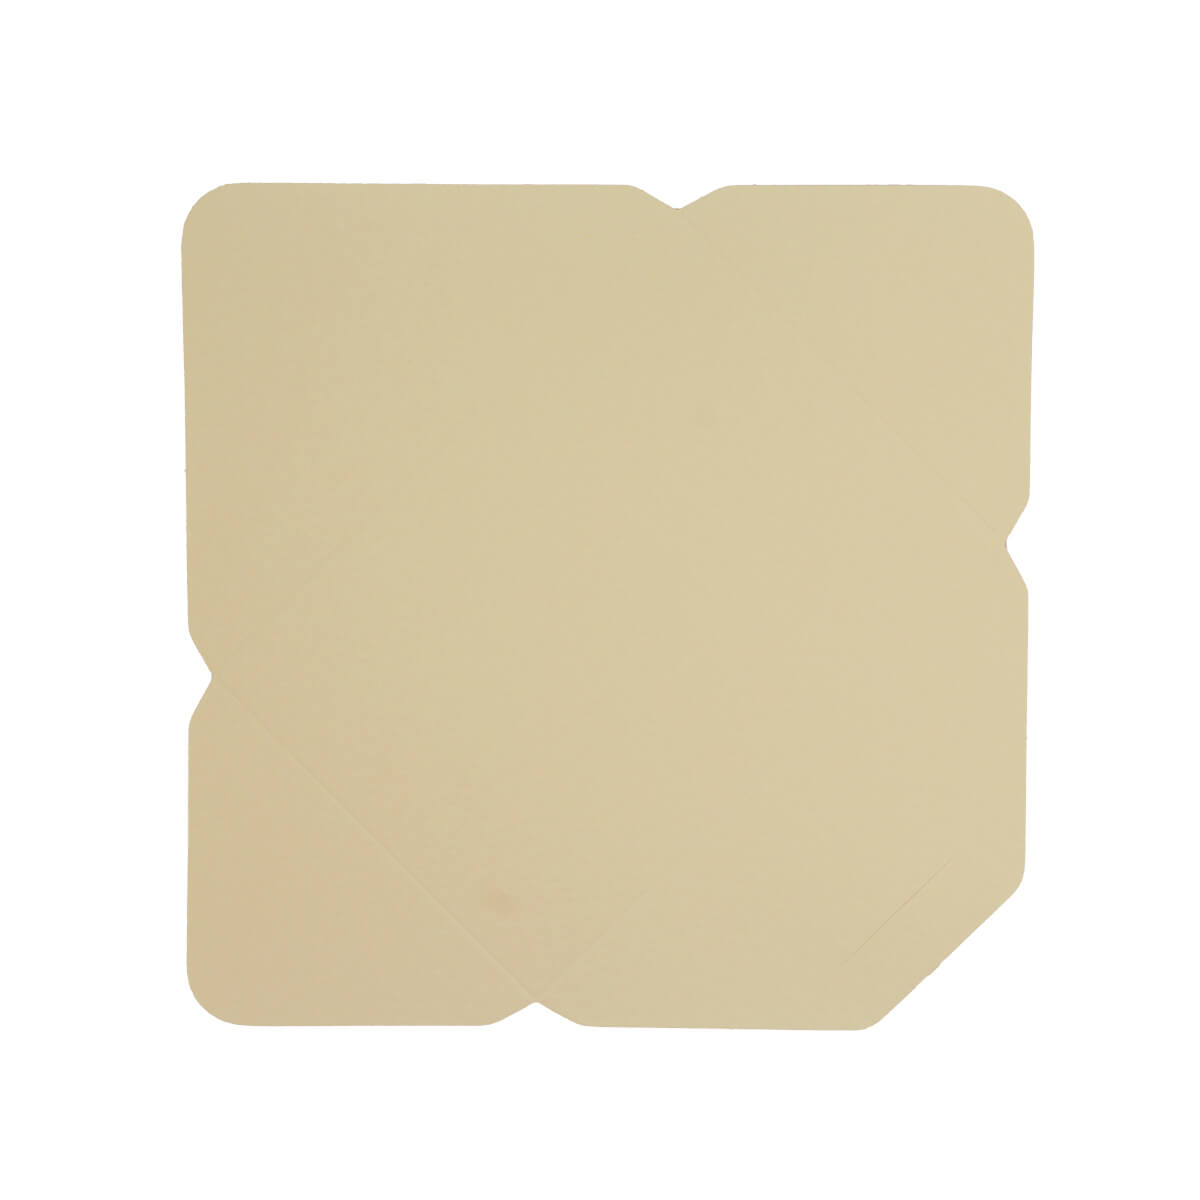 C6 DIE CUT IVORY HAMMER EFFECT ENVELOPES